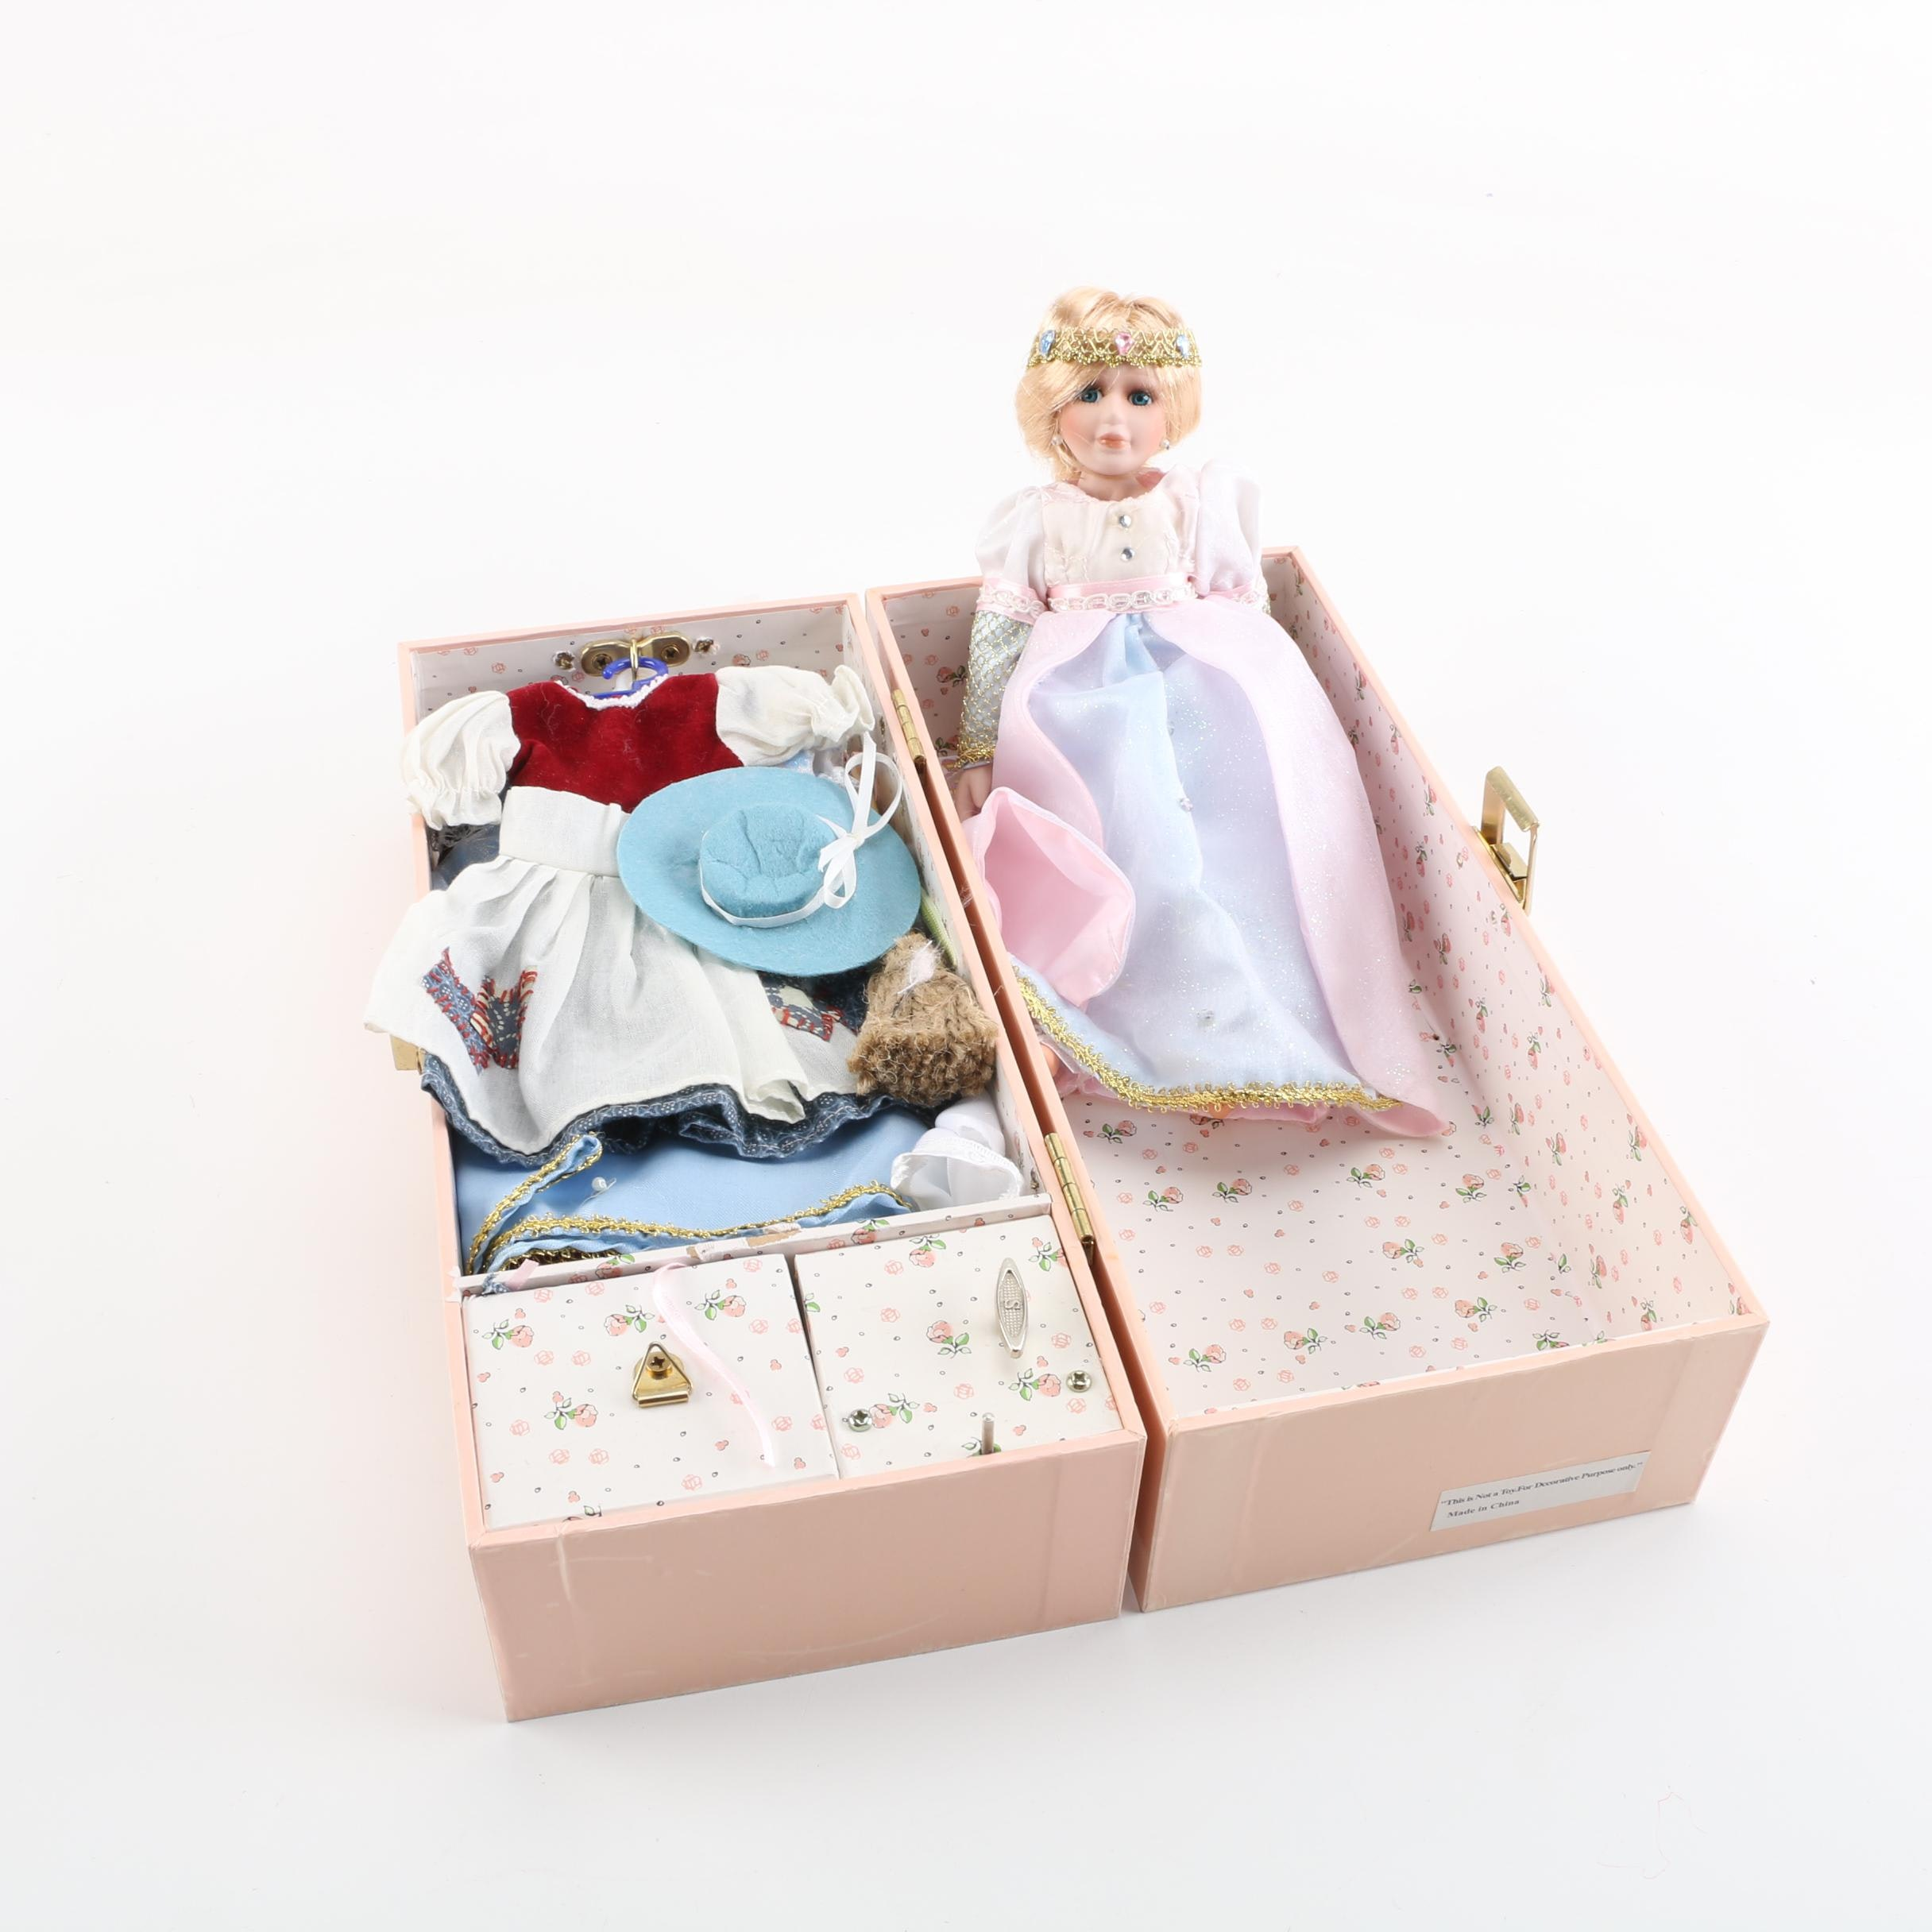 Porcelain Doll with Musical Carrying Case and Doll Costumes